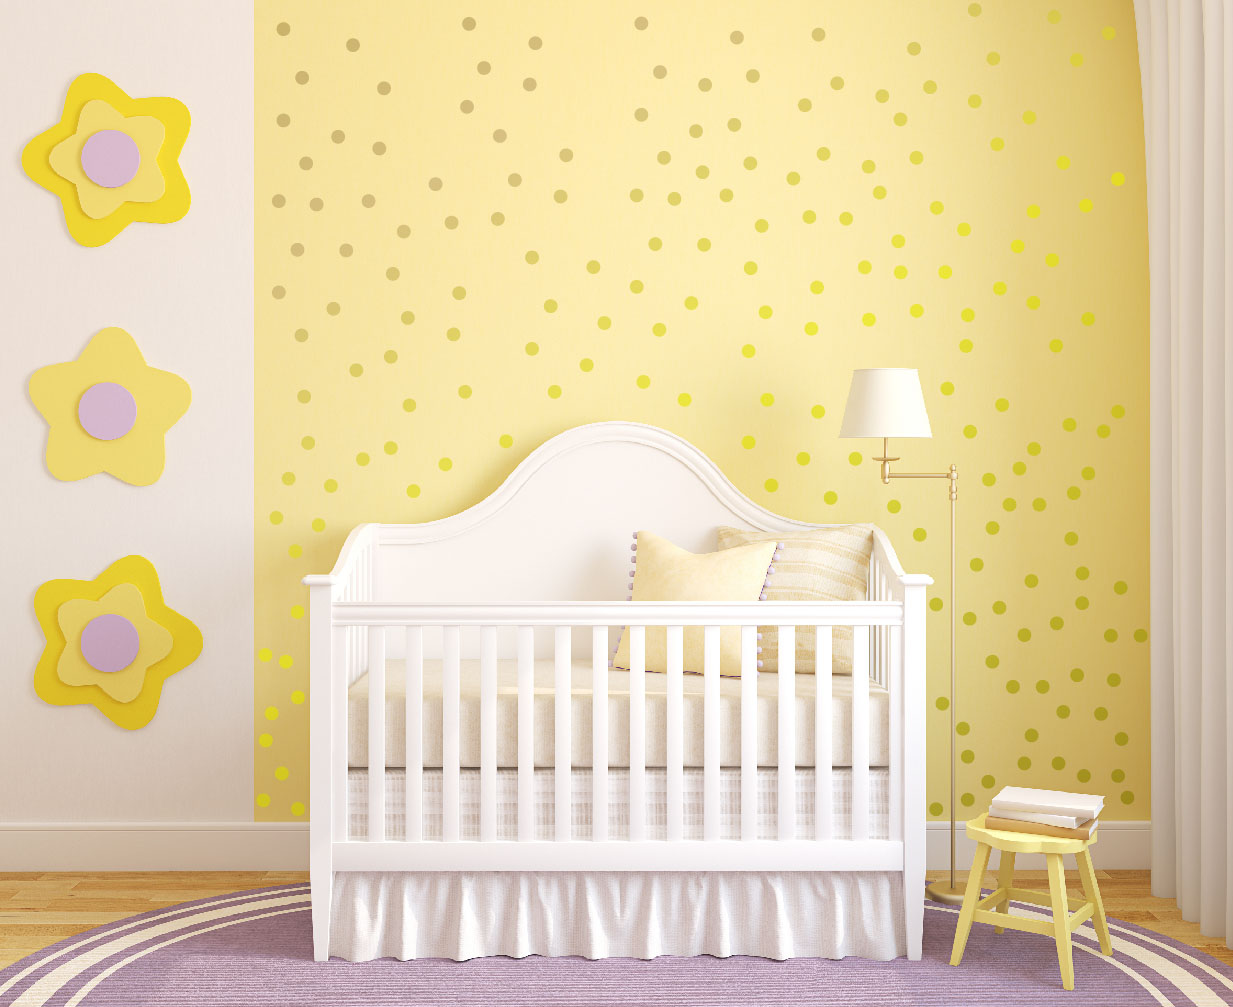 polka dots peel and stick wall decals 1326 innovativestencils. Black Bedroom Furniture Sets. Home Design Ideas